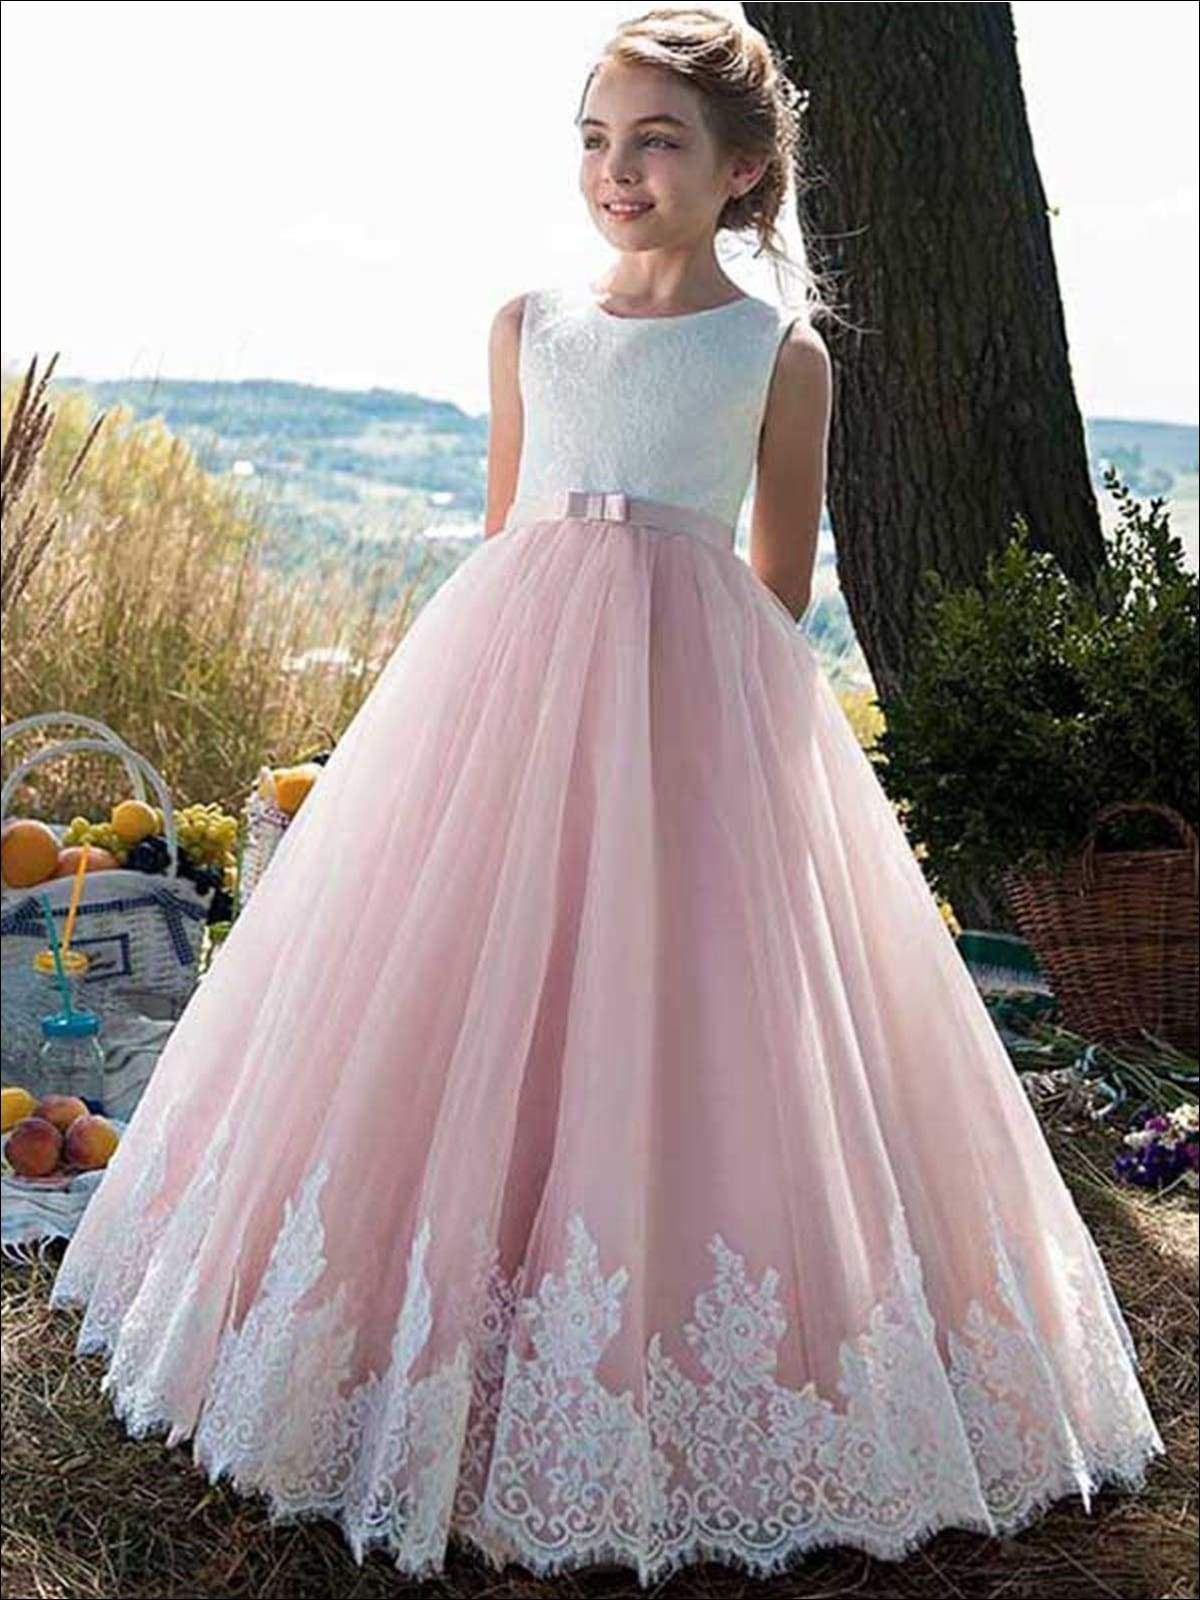 Girls Lace White And Pink Princess Gown Flower Girl Dresses Tulle White Flower Girl Dresses Pink Flower Girl Dresses [ 1600 x 1200 Pixel ]